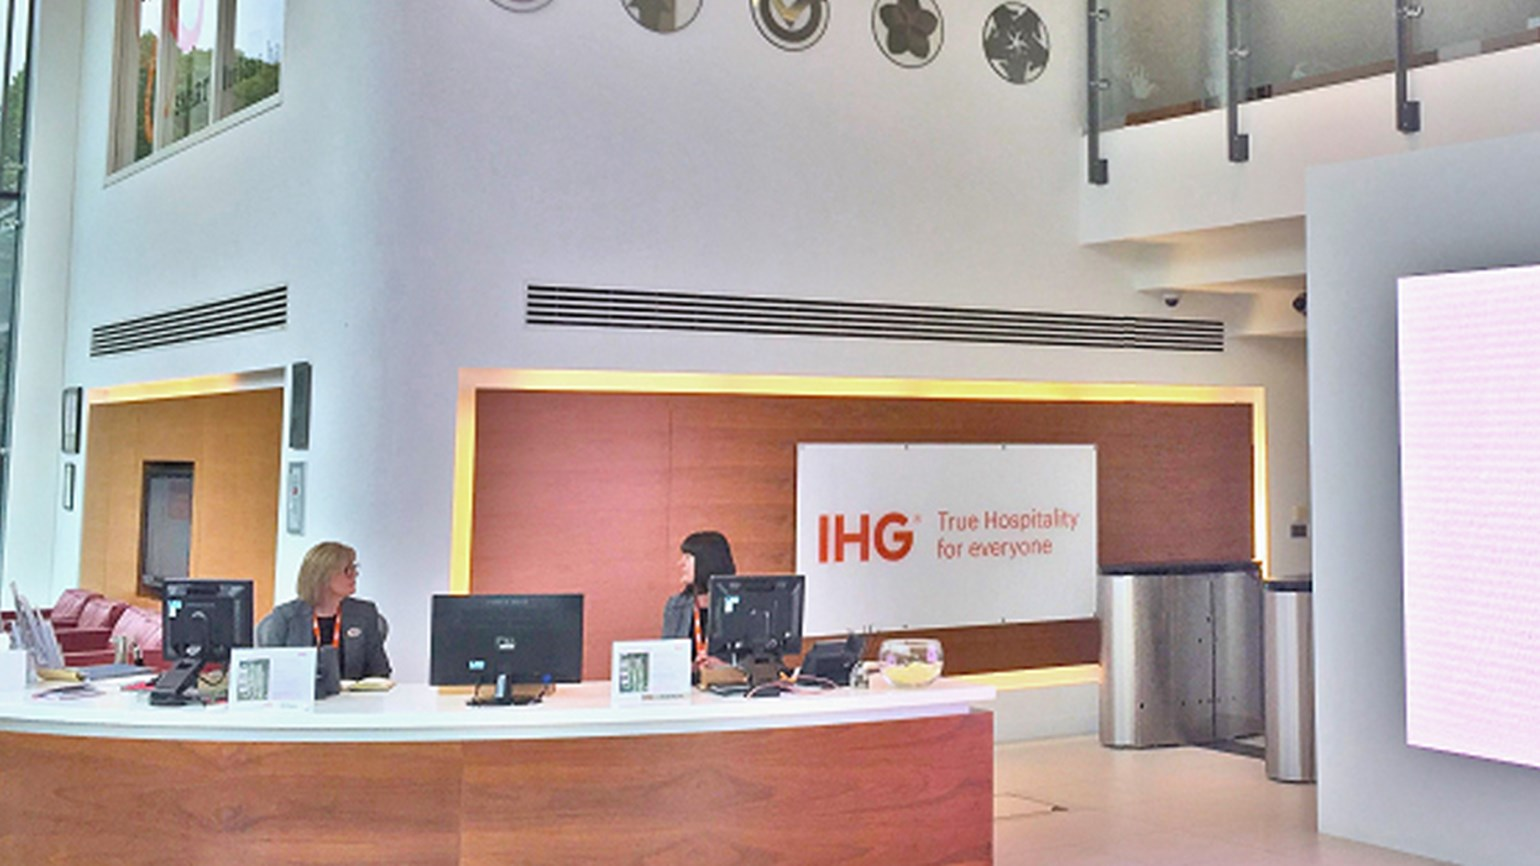 IHG headquarters